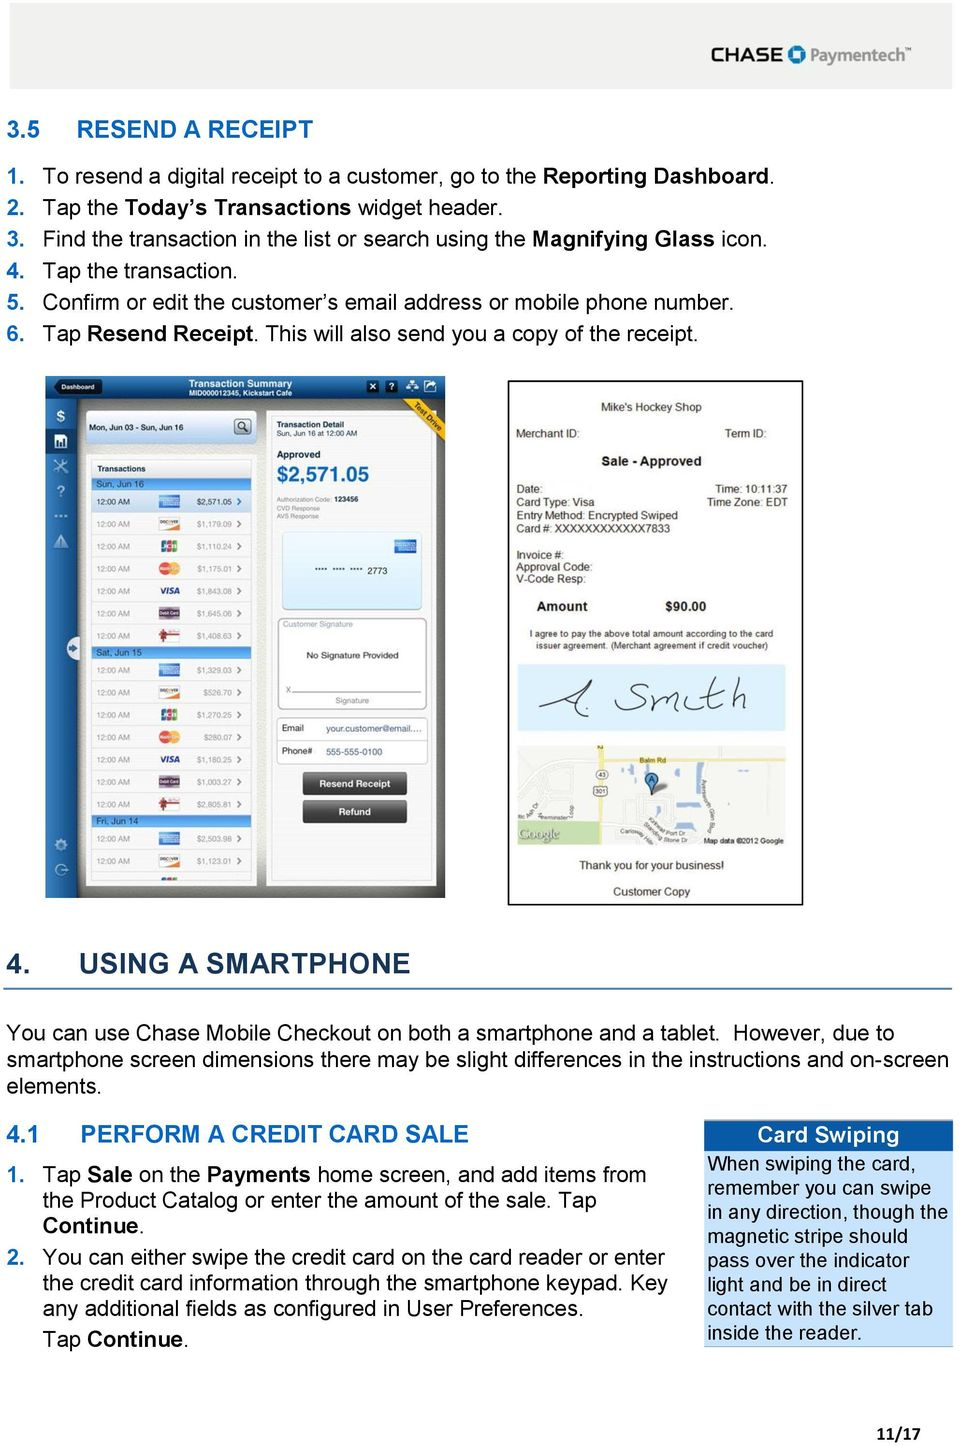 Chase Mobile Checkout Canada User Guide - PDF